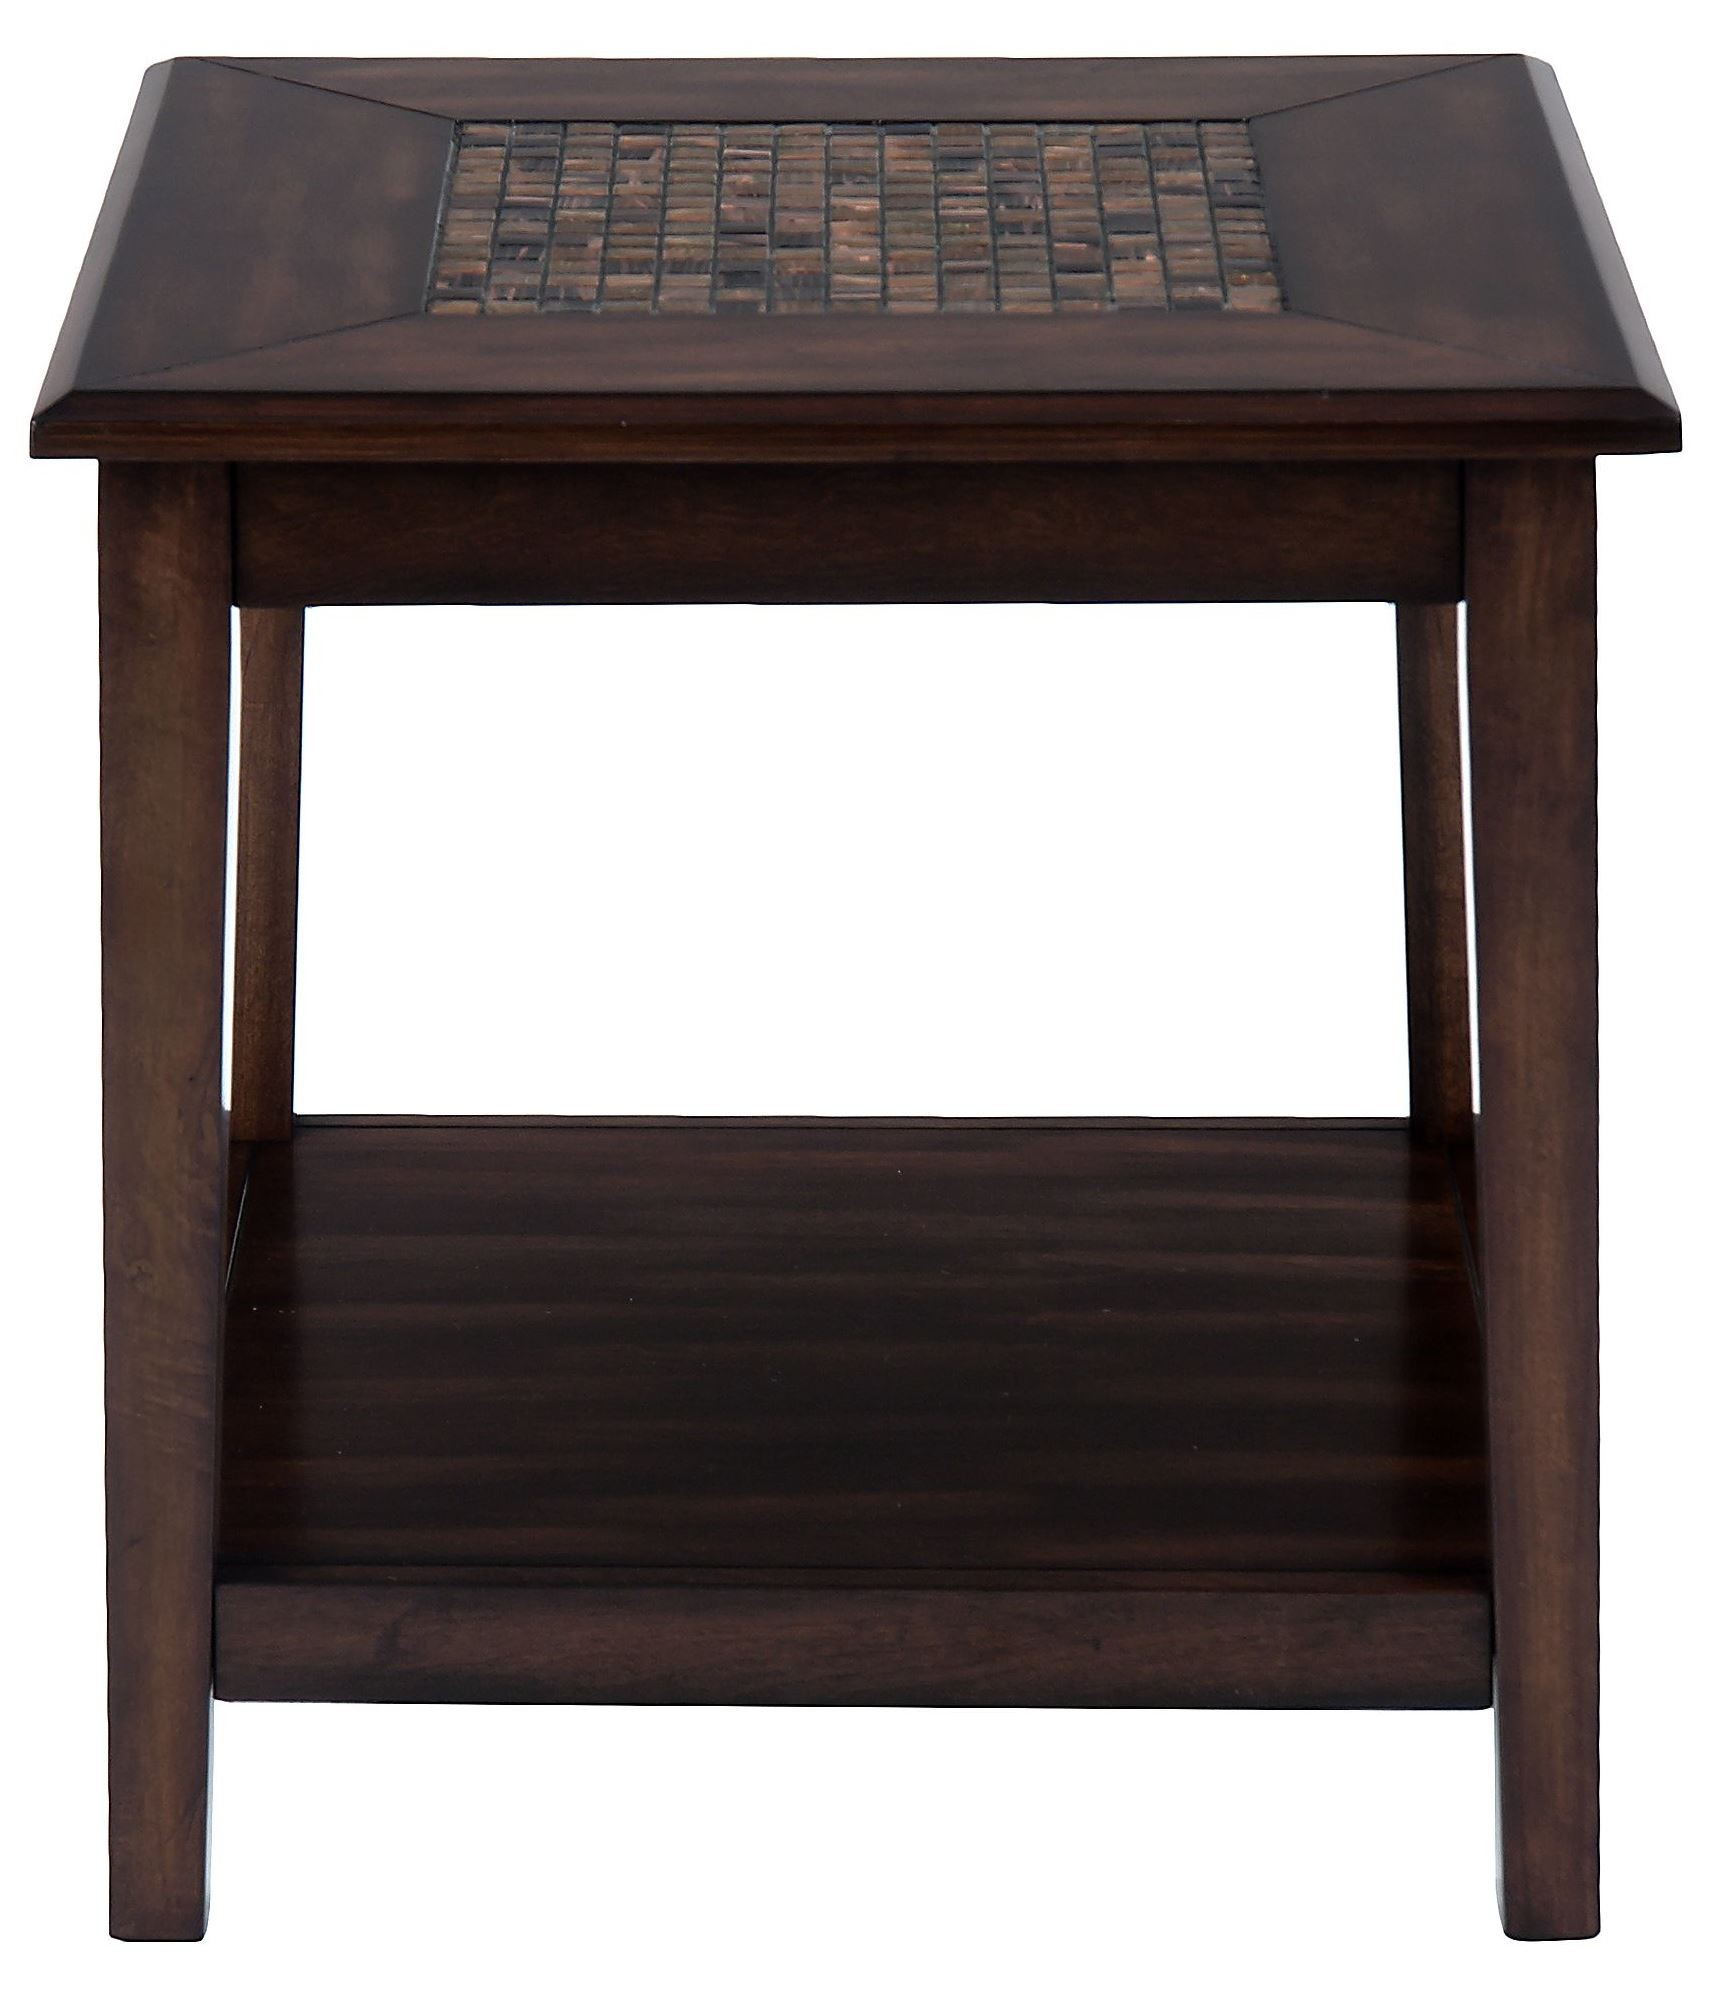 Baroque Brown Mosaic Tile Inlay End Table From Jofran